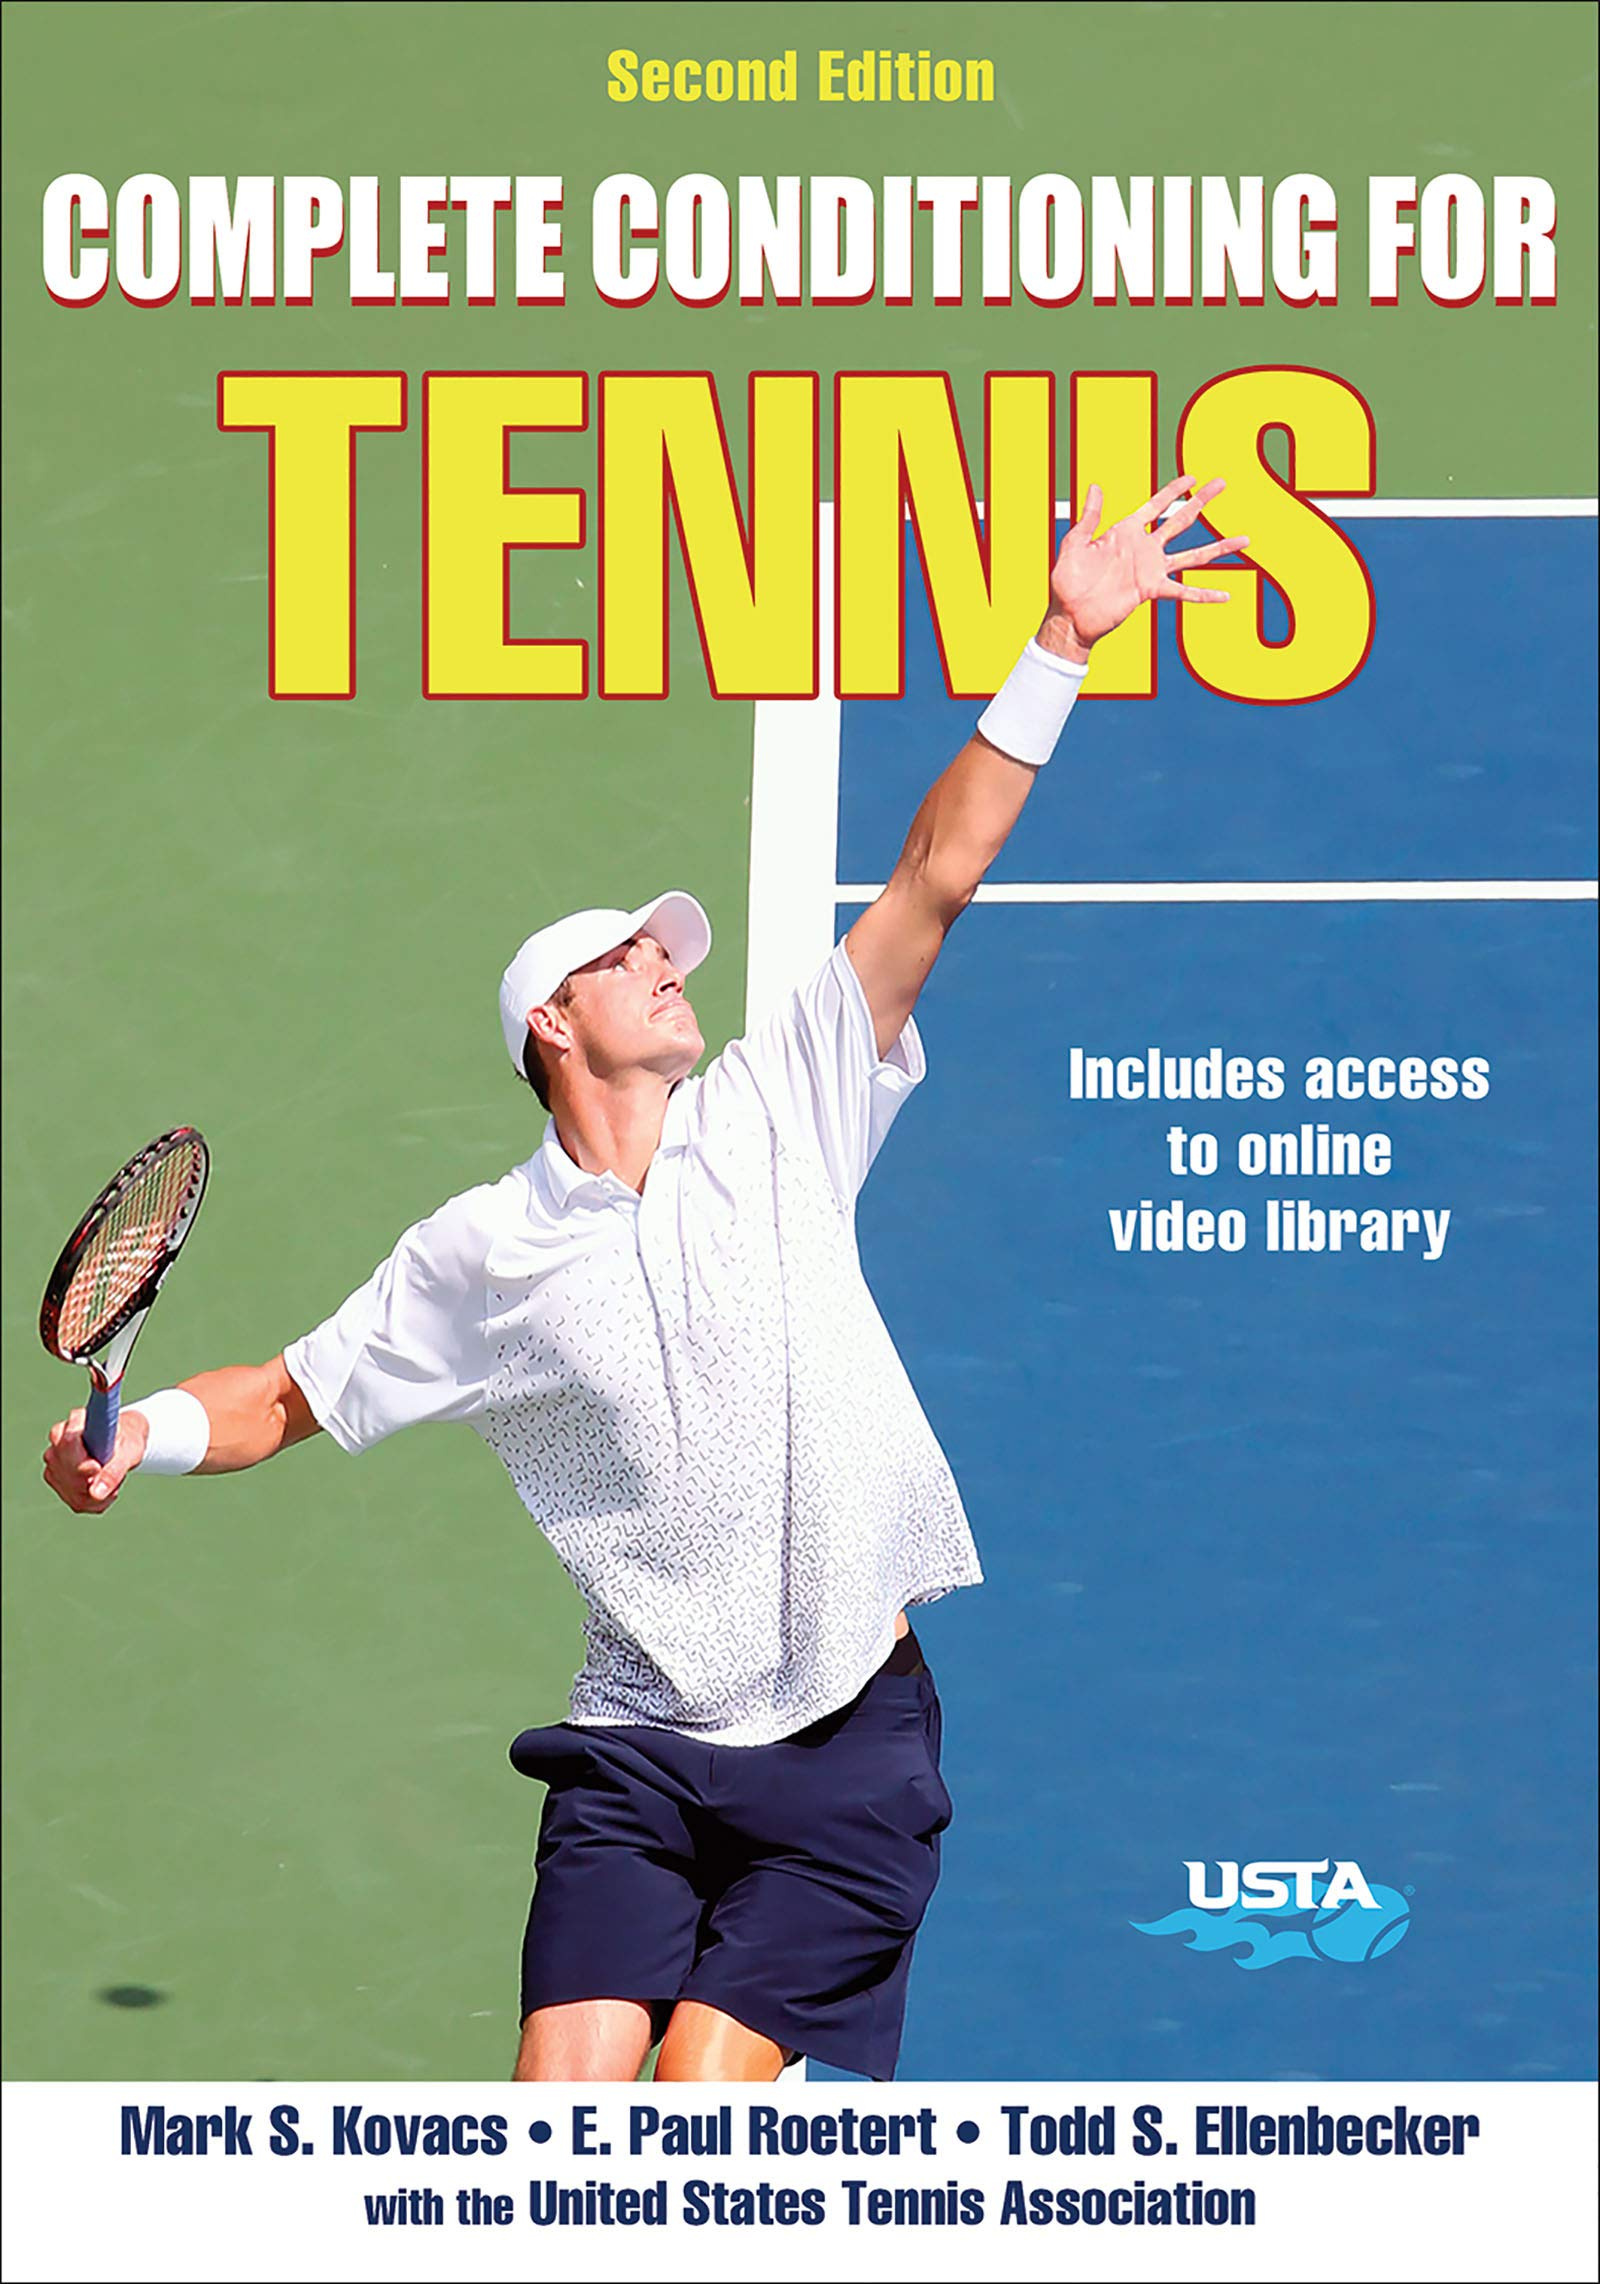 Complete Conditioning for Tennis Complete Conditioning for Sports: Amazon.es: Mark Kovacs, E. Paul Roetert, Todd S. Ellenbecker, United States Tennis ...